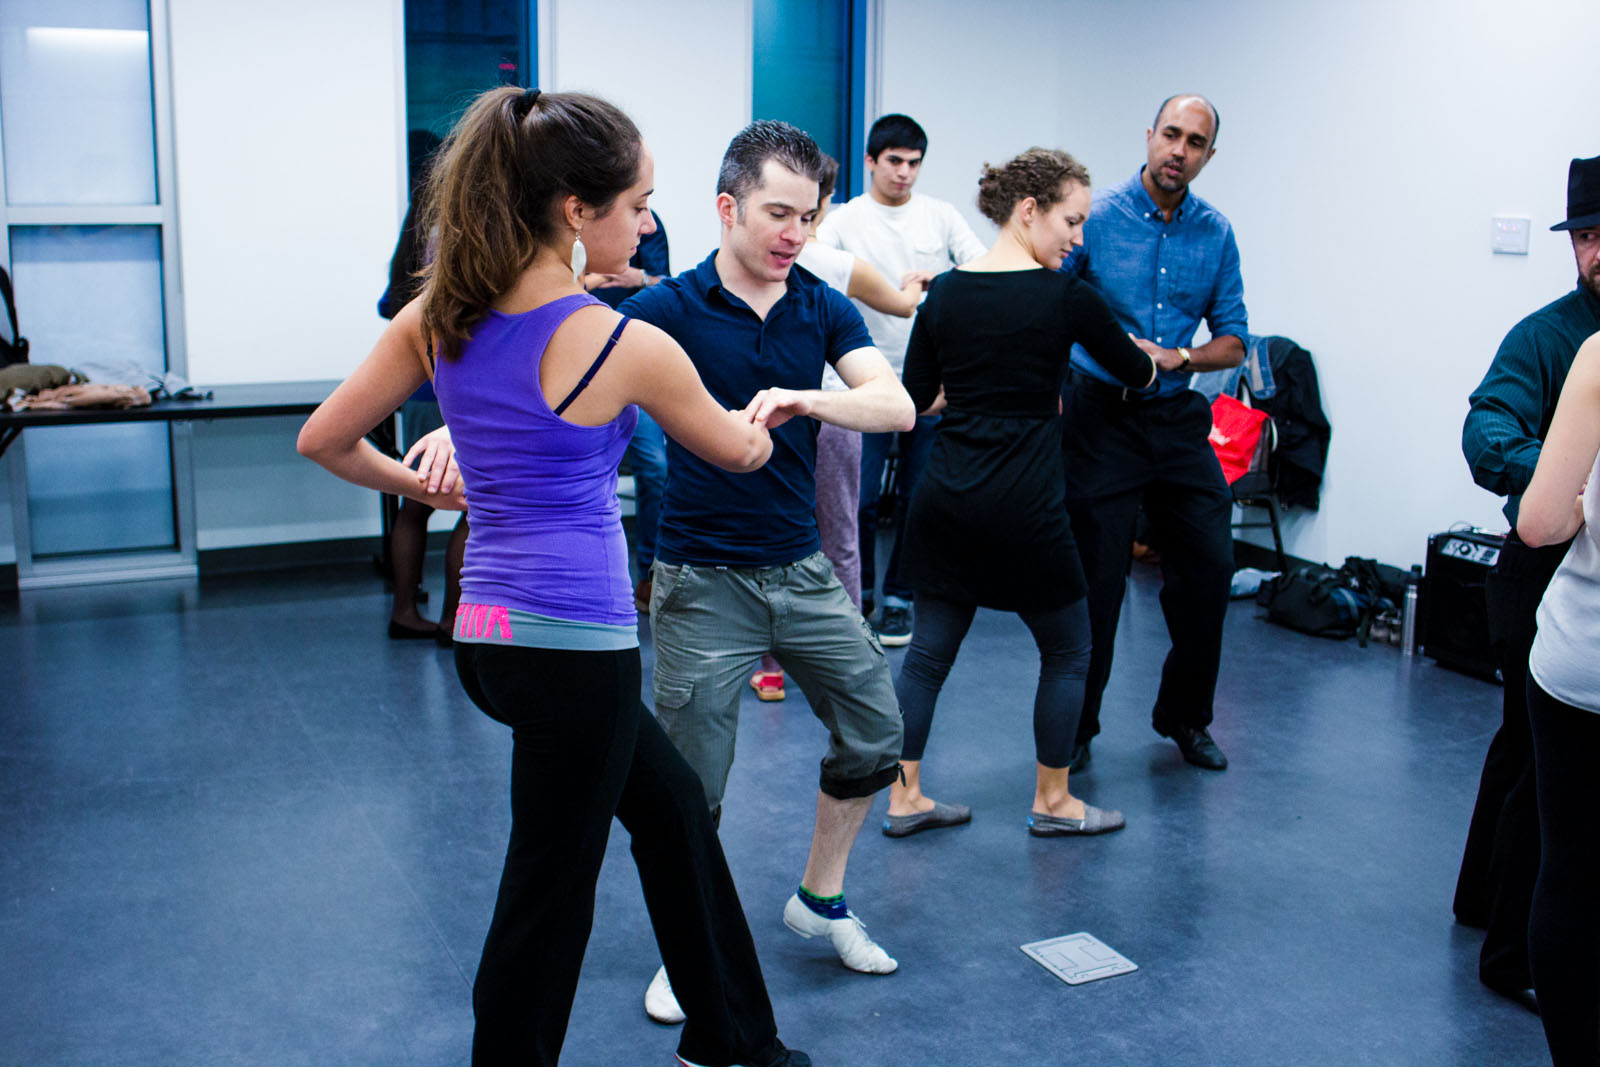 The Latin Dance Clubs teaches salsa, merengue, bachata and the Argentine tango.